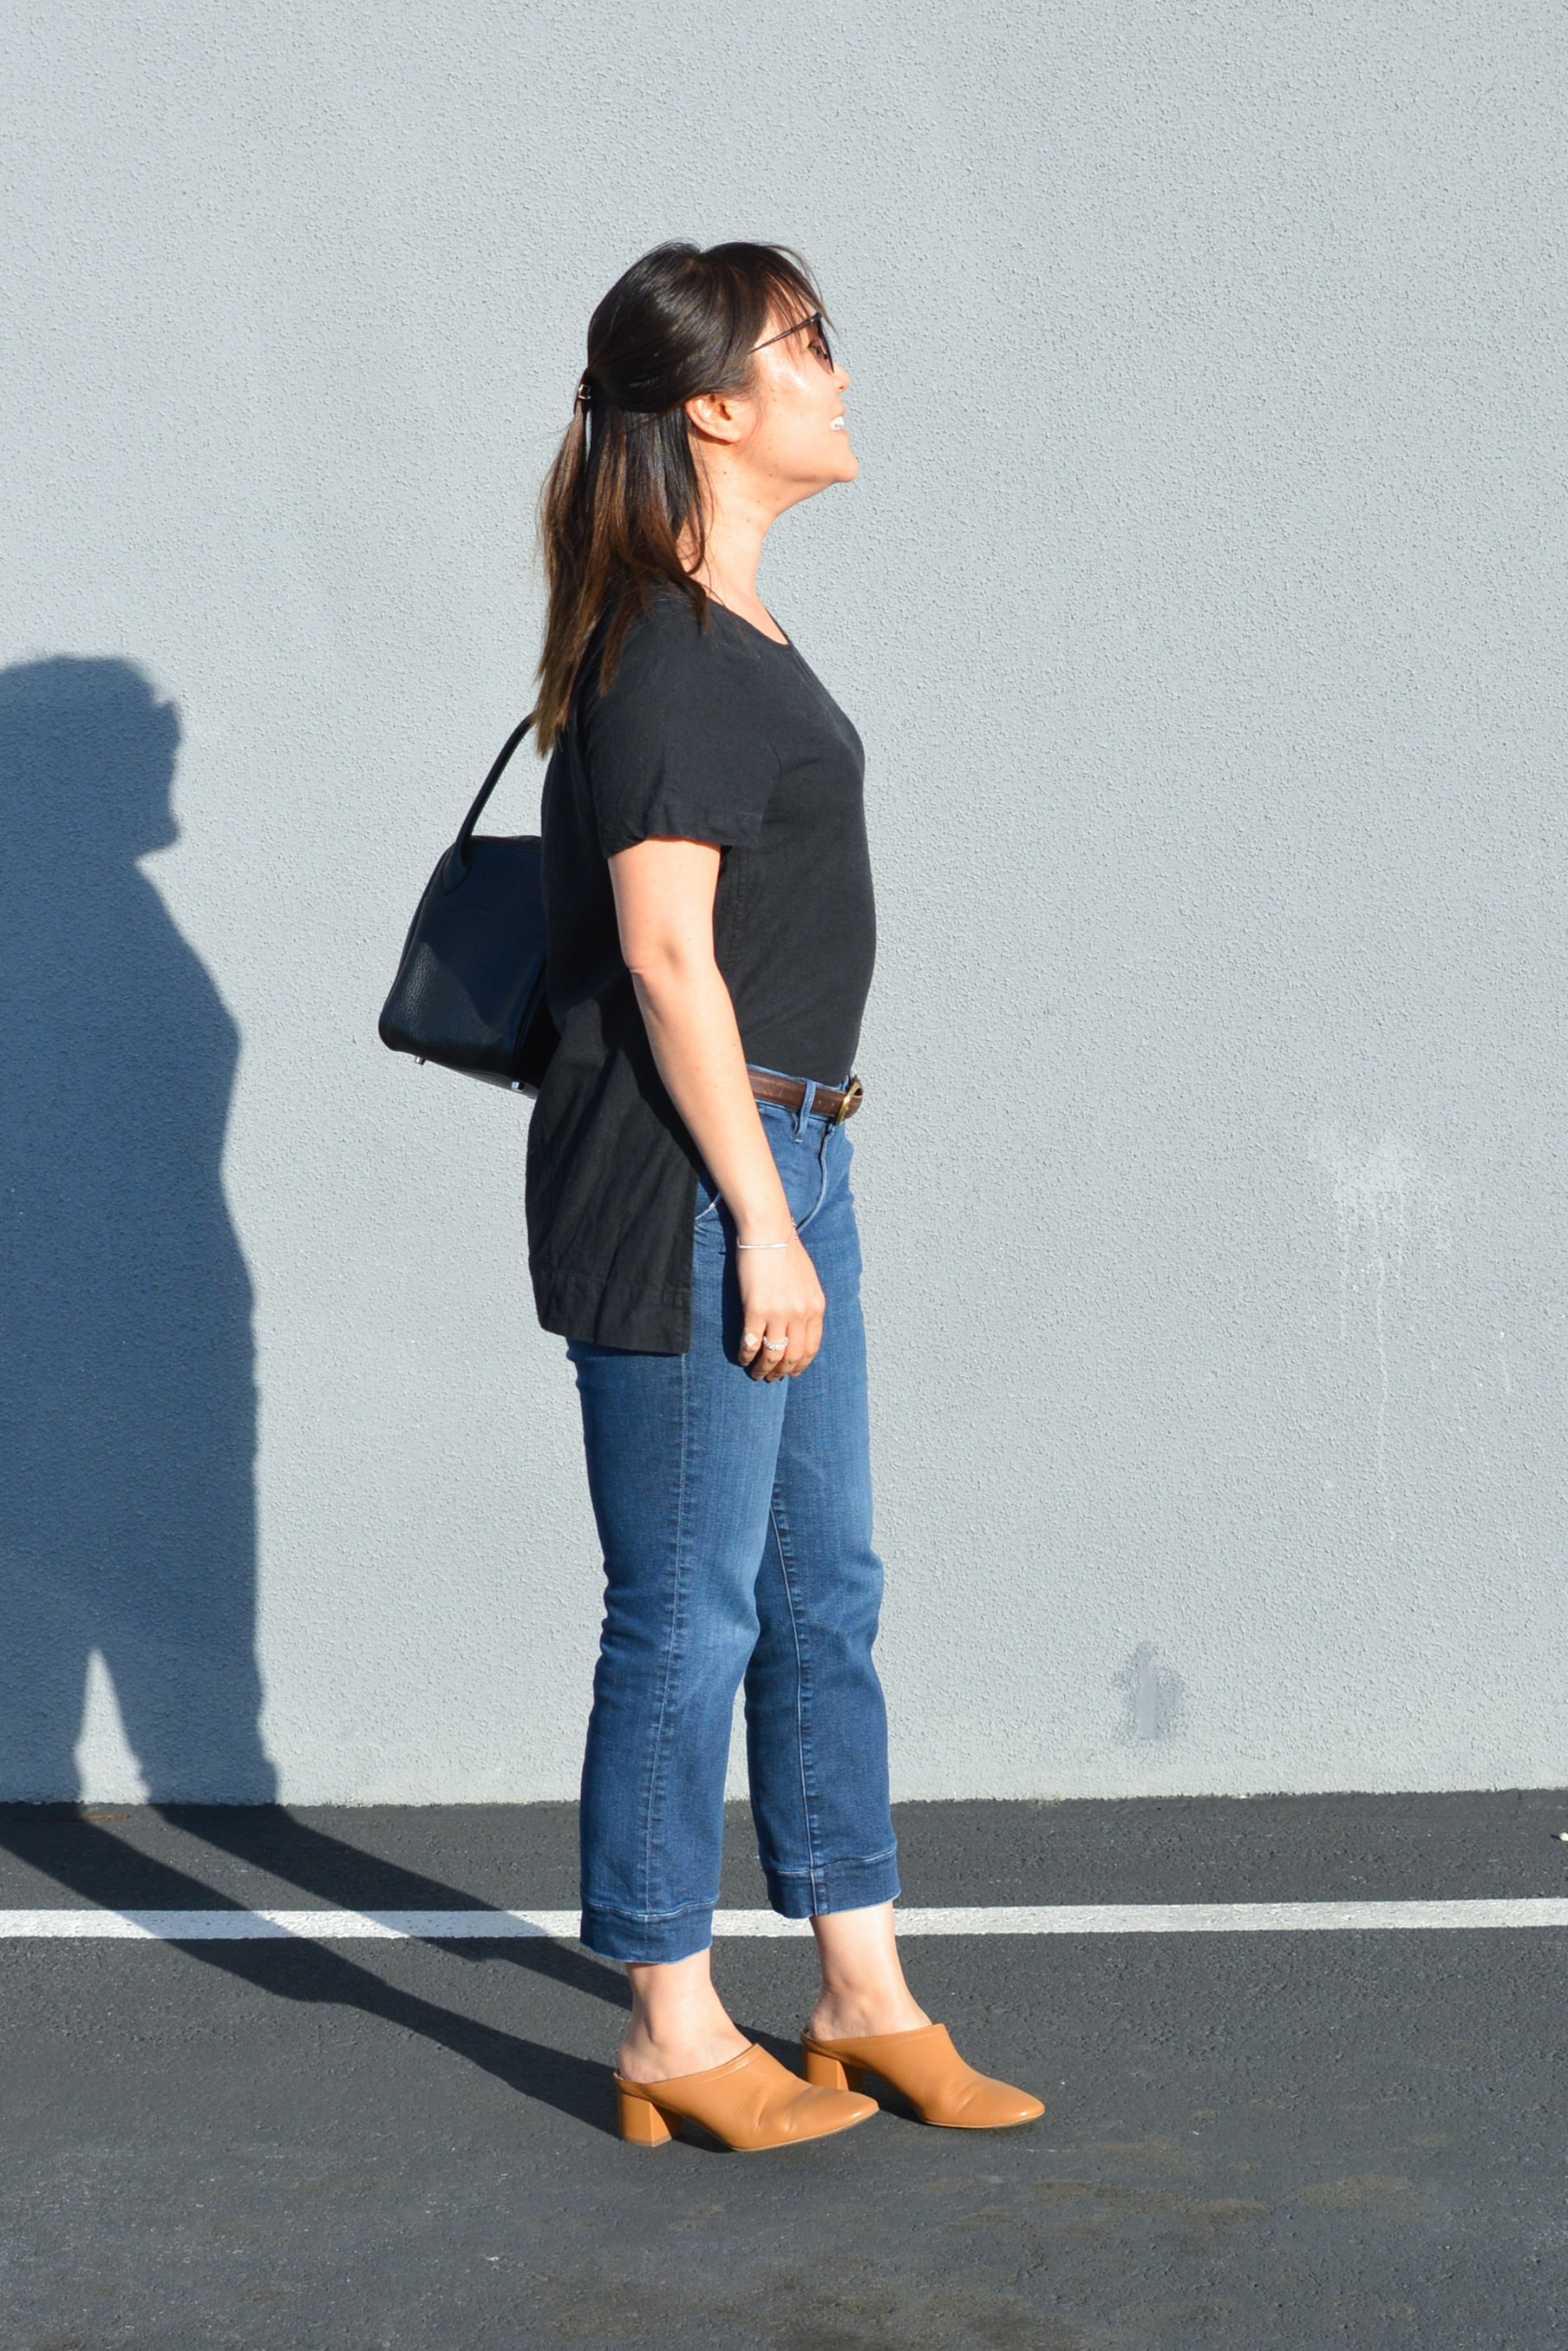 Jamie and the Jones Review The Stable Basic Split Tee Top  (5 of 6)-min.jpg